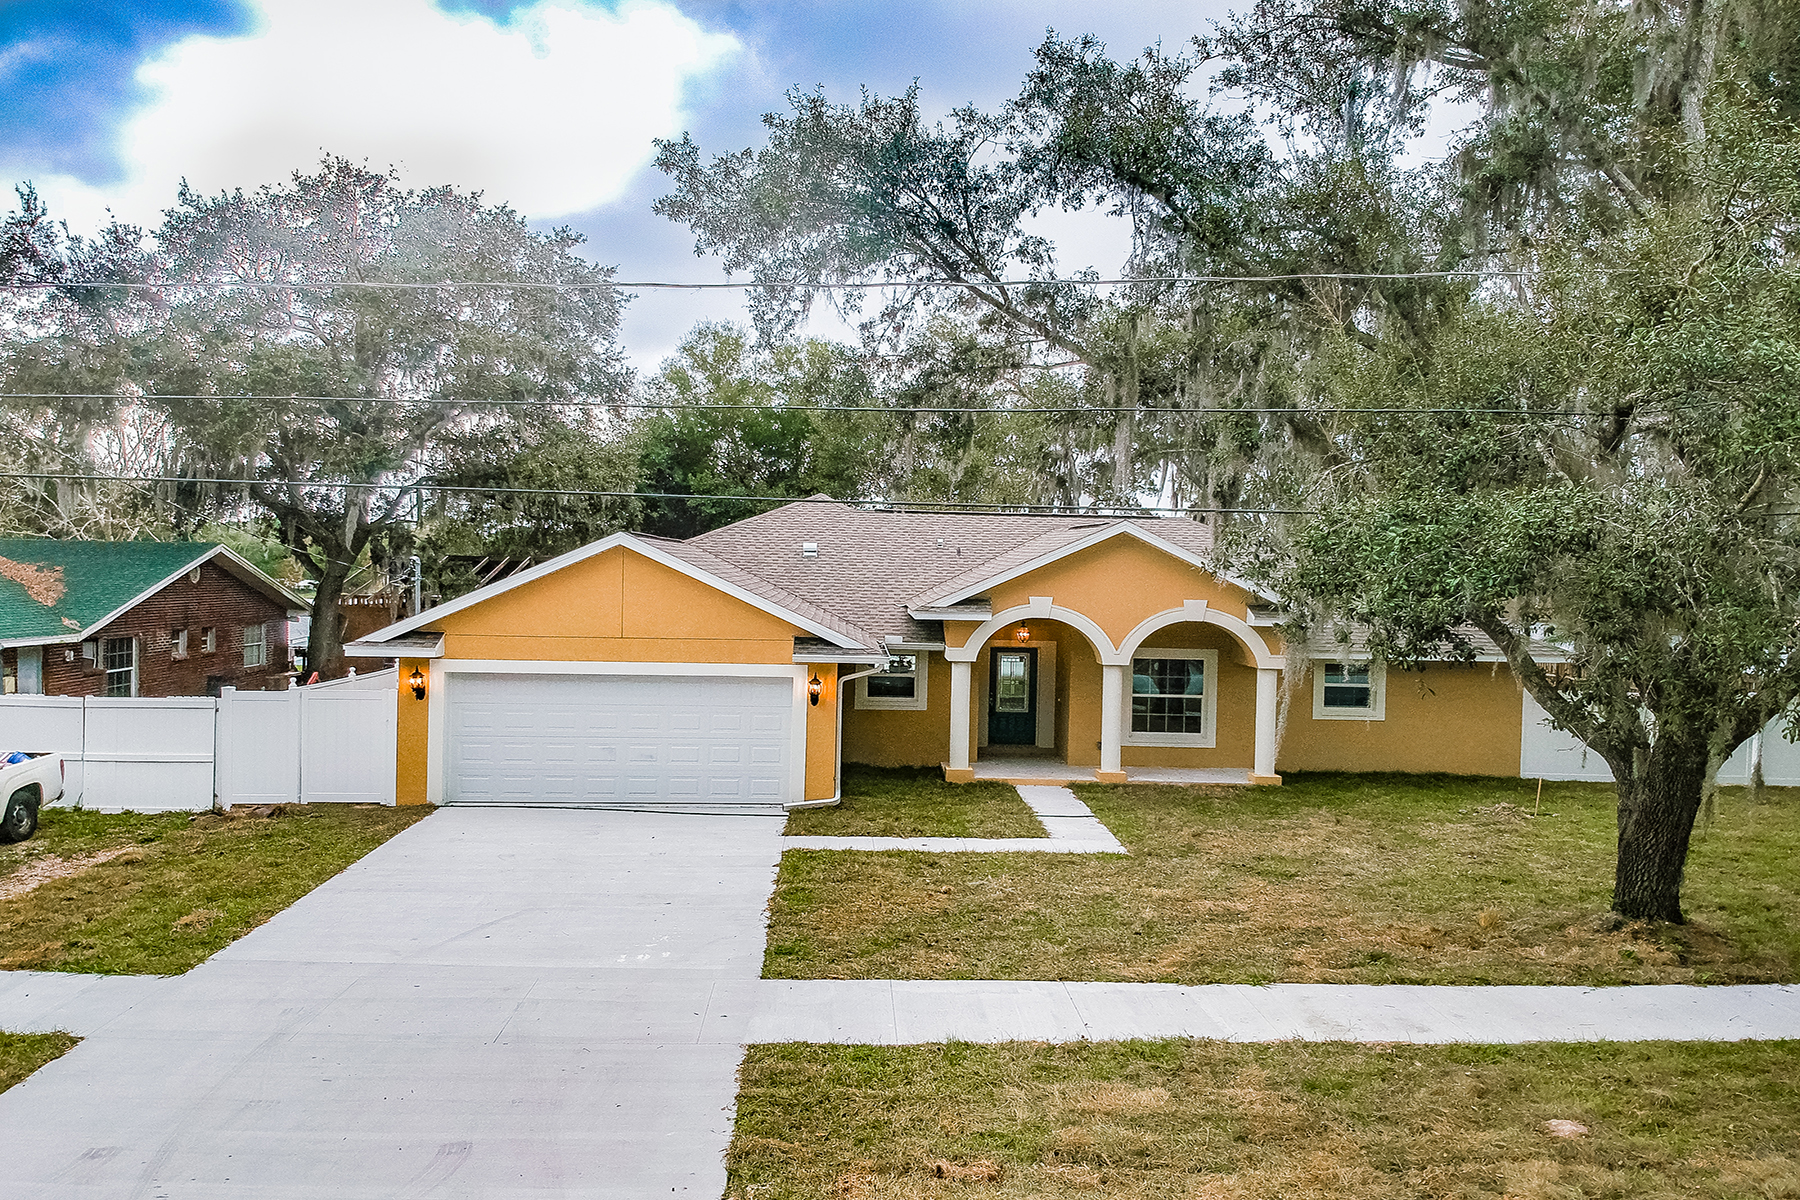 Single Family Homes for Sale at 15410 15TH 15410 N 15th St Lutz, Florida 33549 United States